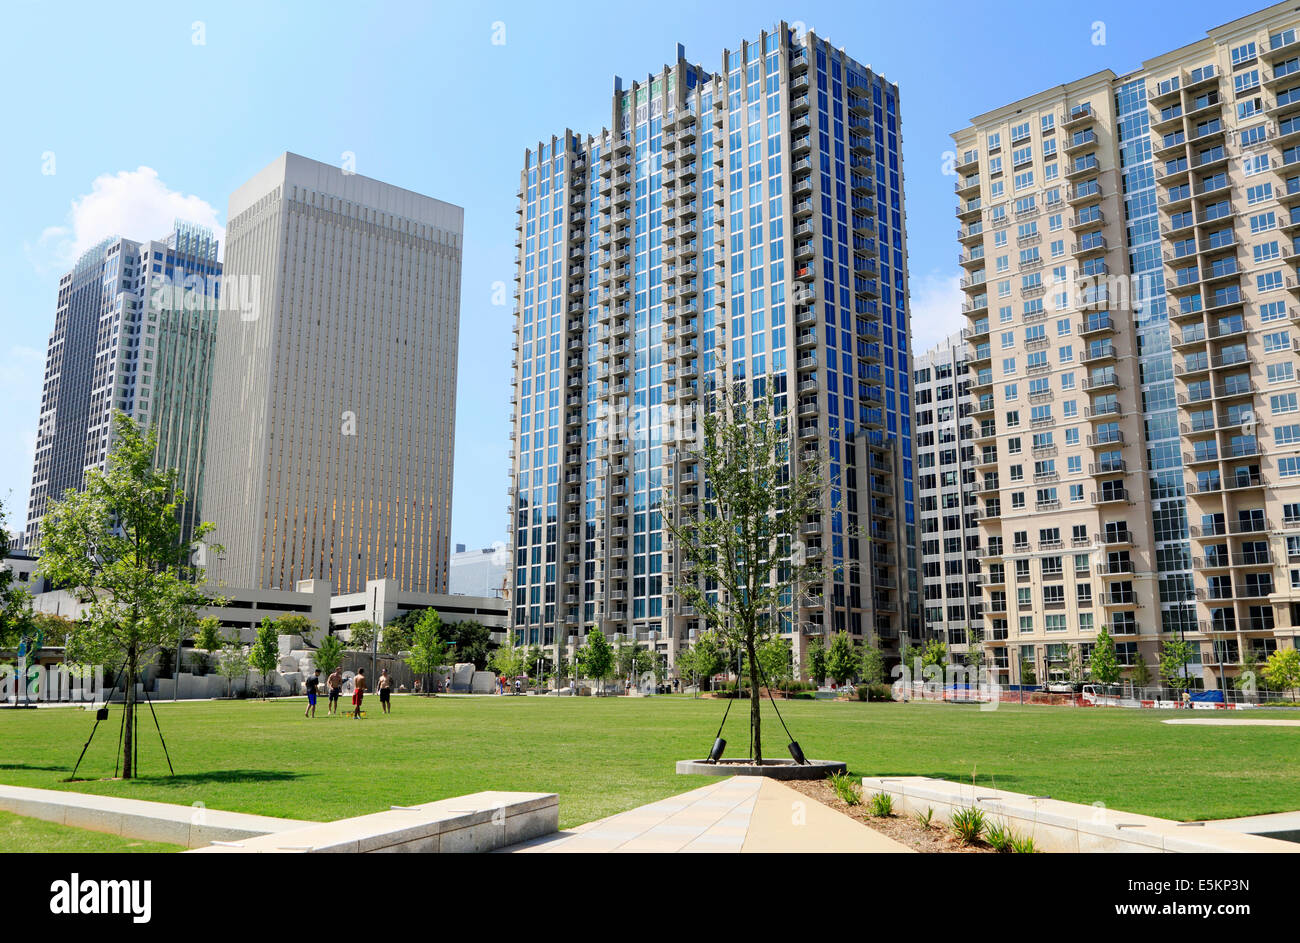 Urban living in Charlotte, North Carolina. Residential buildings at Romare Bearden Park in downtown. - Stock Image